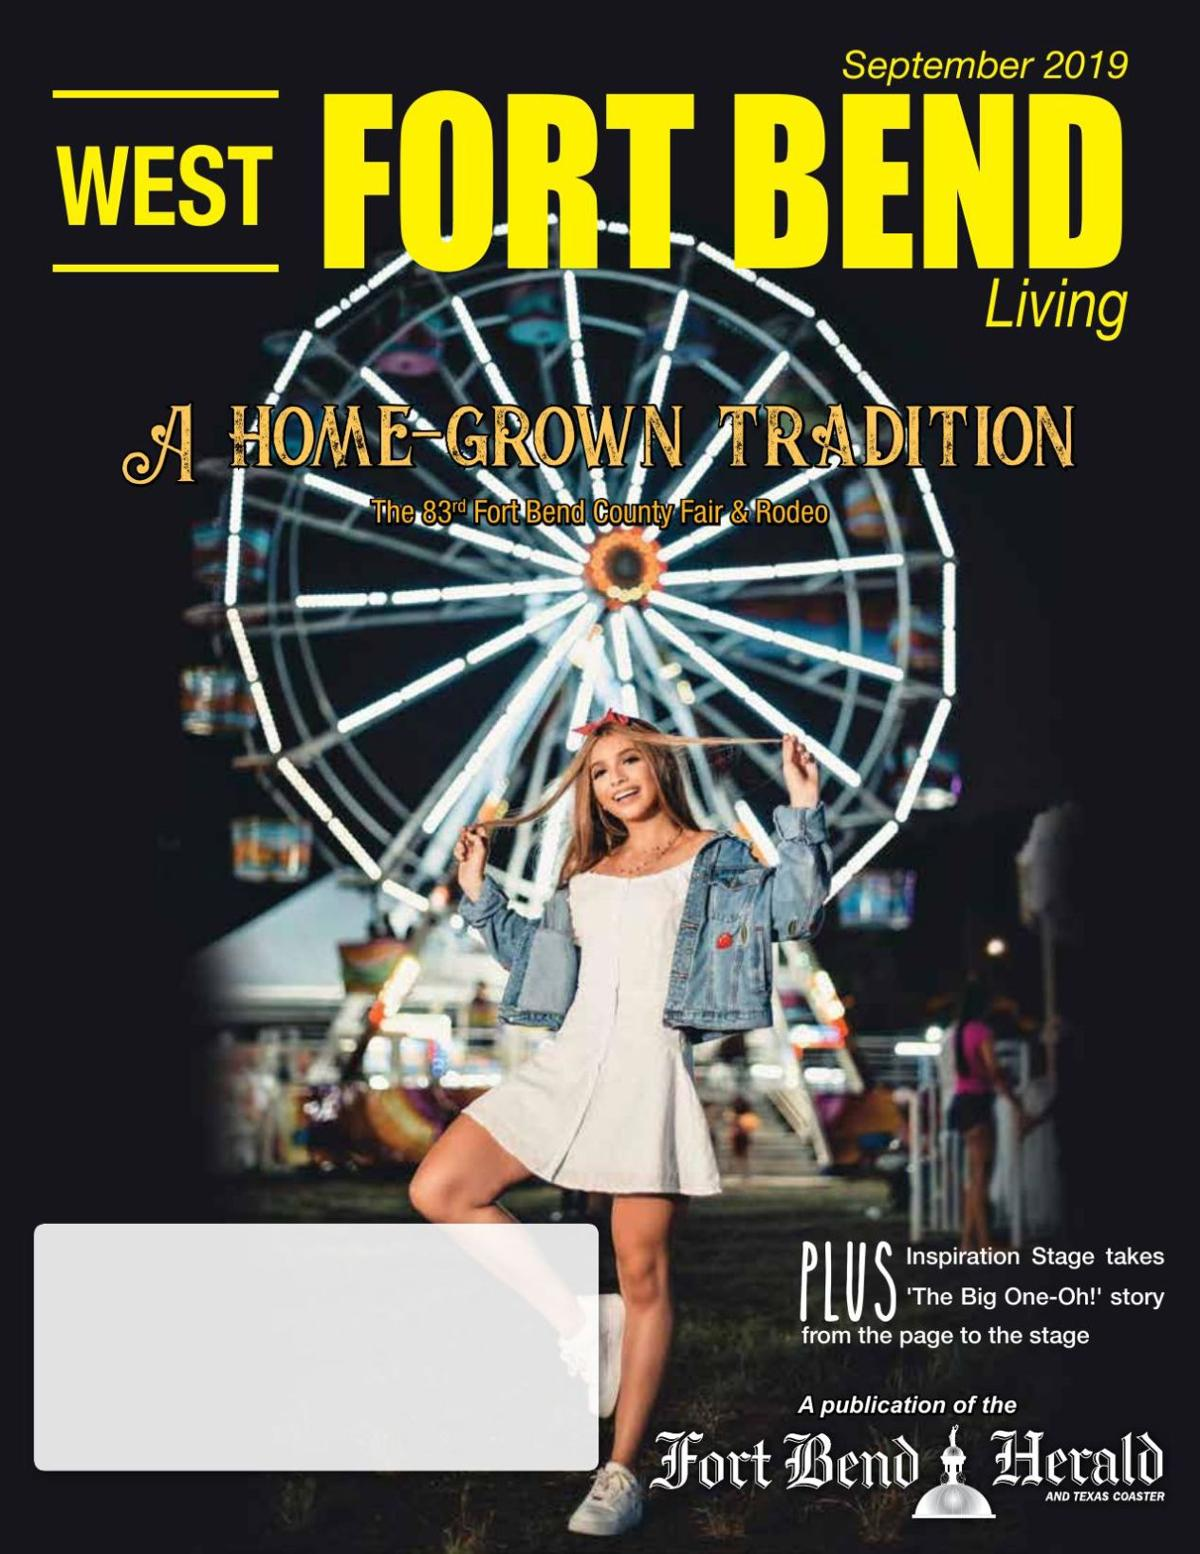 West Fort Bend Living: September 2019